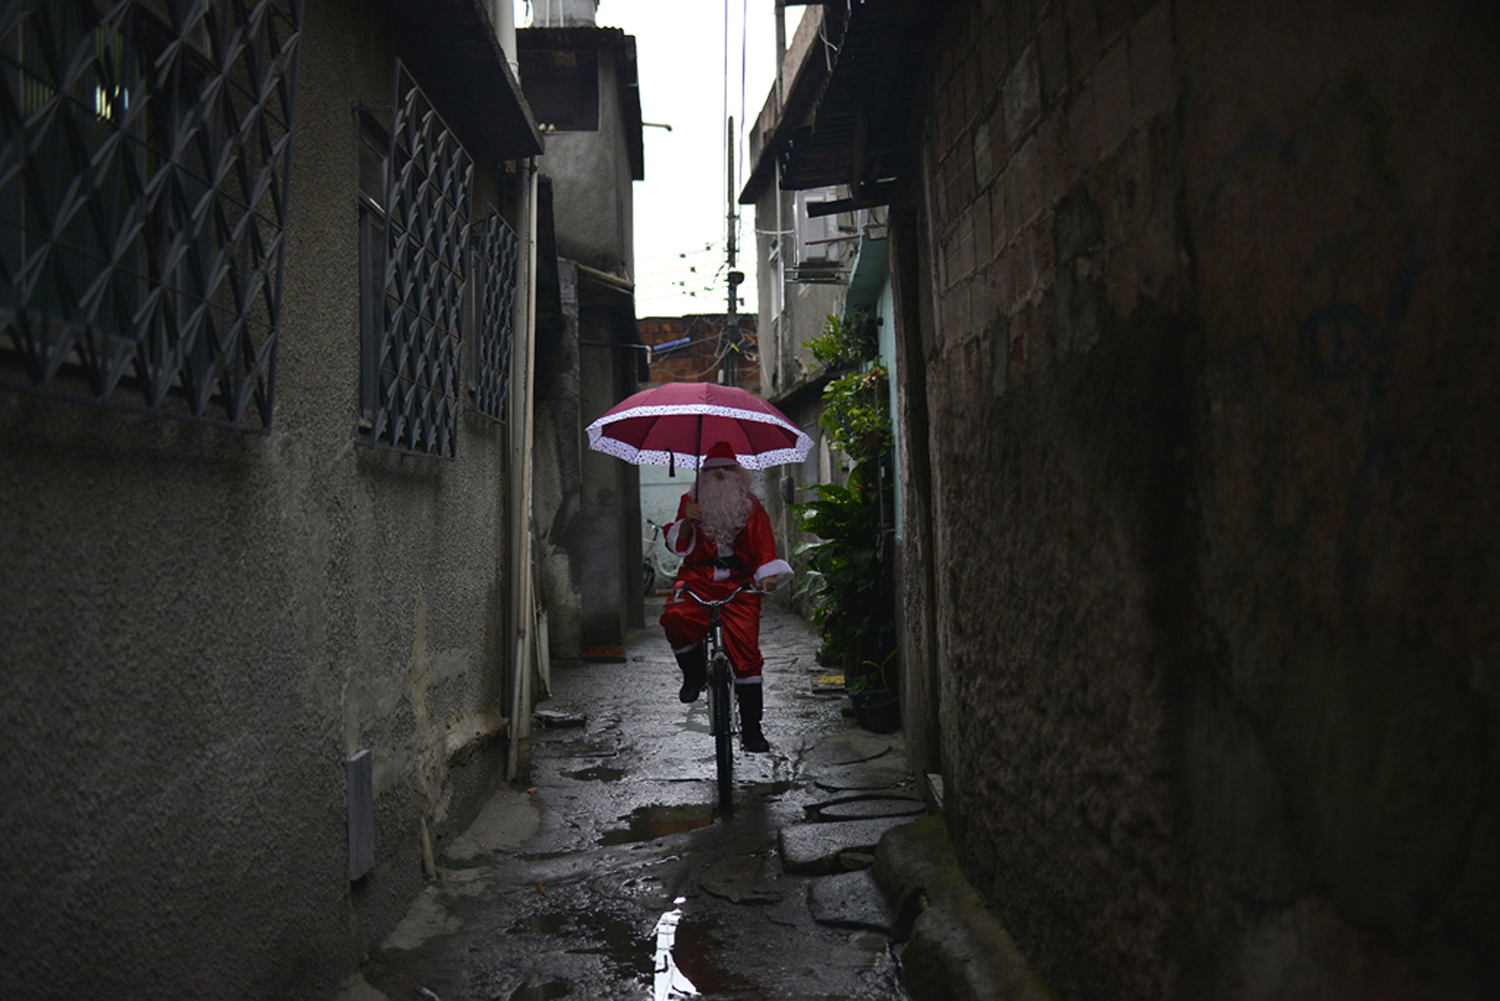 Leandro Souza, 28, who lives in the favela da Mare complex, one of the most violents in Rio de Janeiro, dresses as Santa Claus to distribute gifts to the children of the community in Rio de Janeiro, Brazil on December 17, 2016. / AFP / FABIO TEIXEIRA (Photo credit should read FABIO TEIXEIRA/AFP/Getty Images)